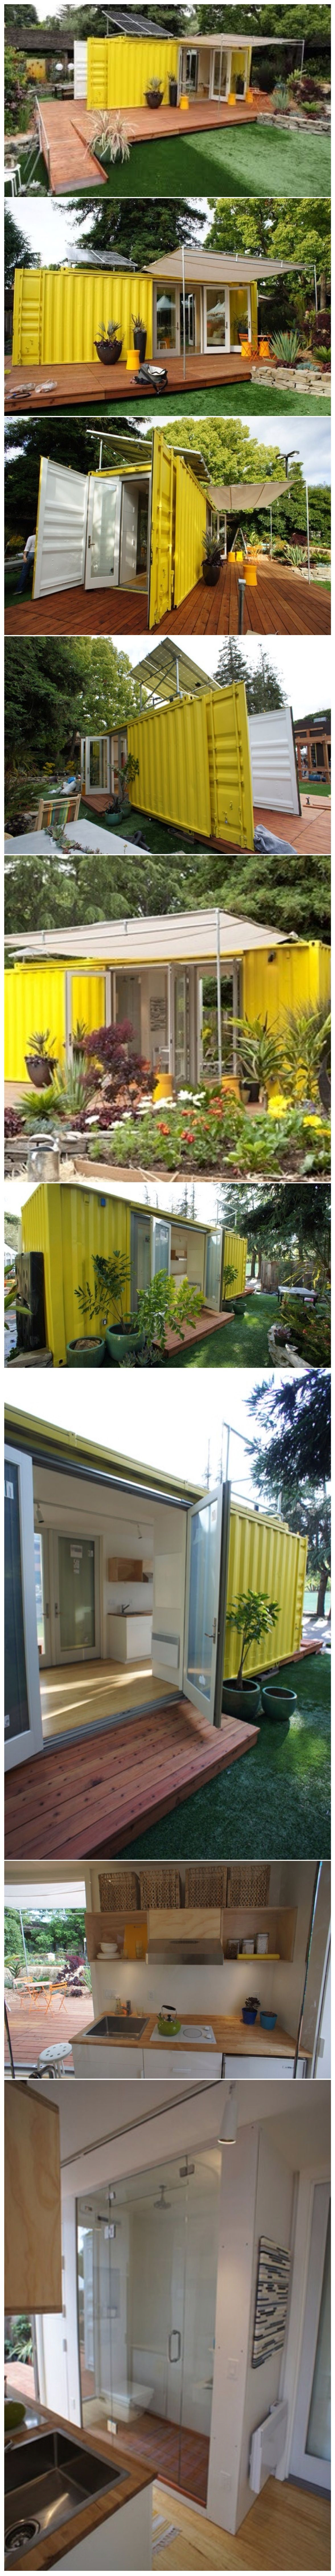 Architektur eco pinterest container h user for Minihaus container